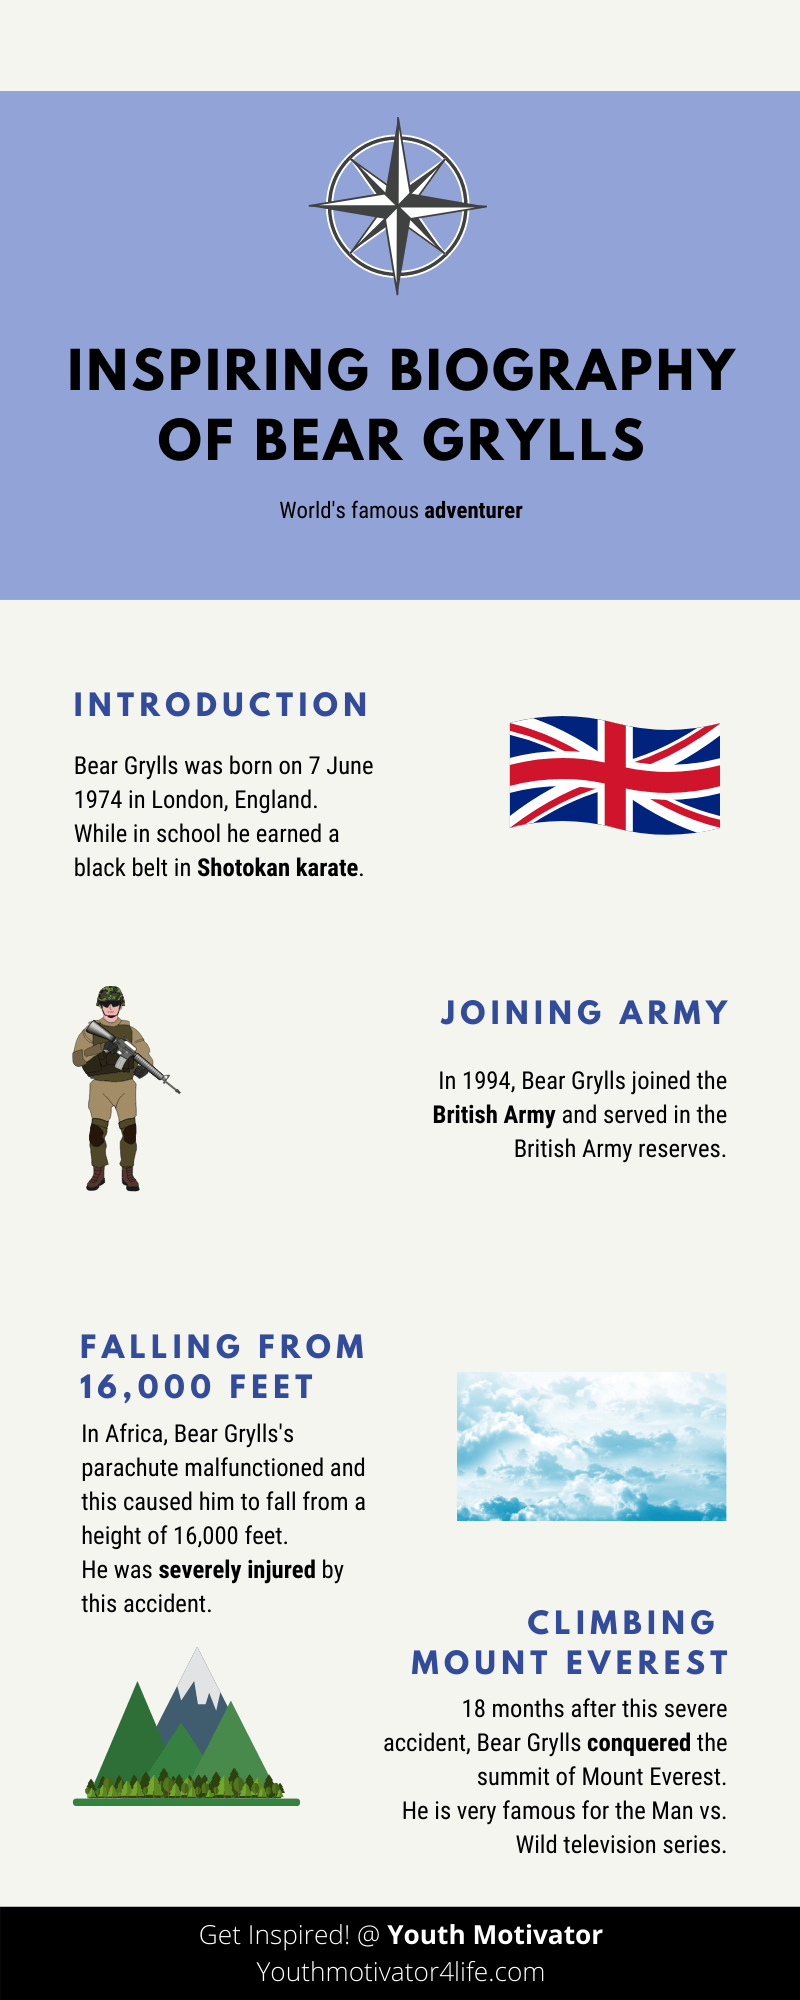 An infographic on biography of Bear Grylls